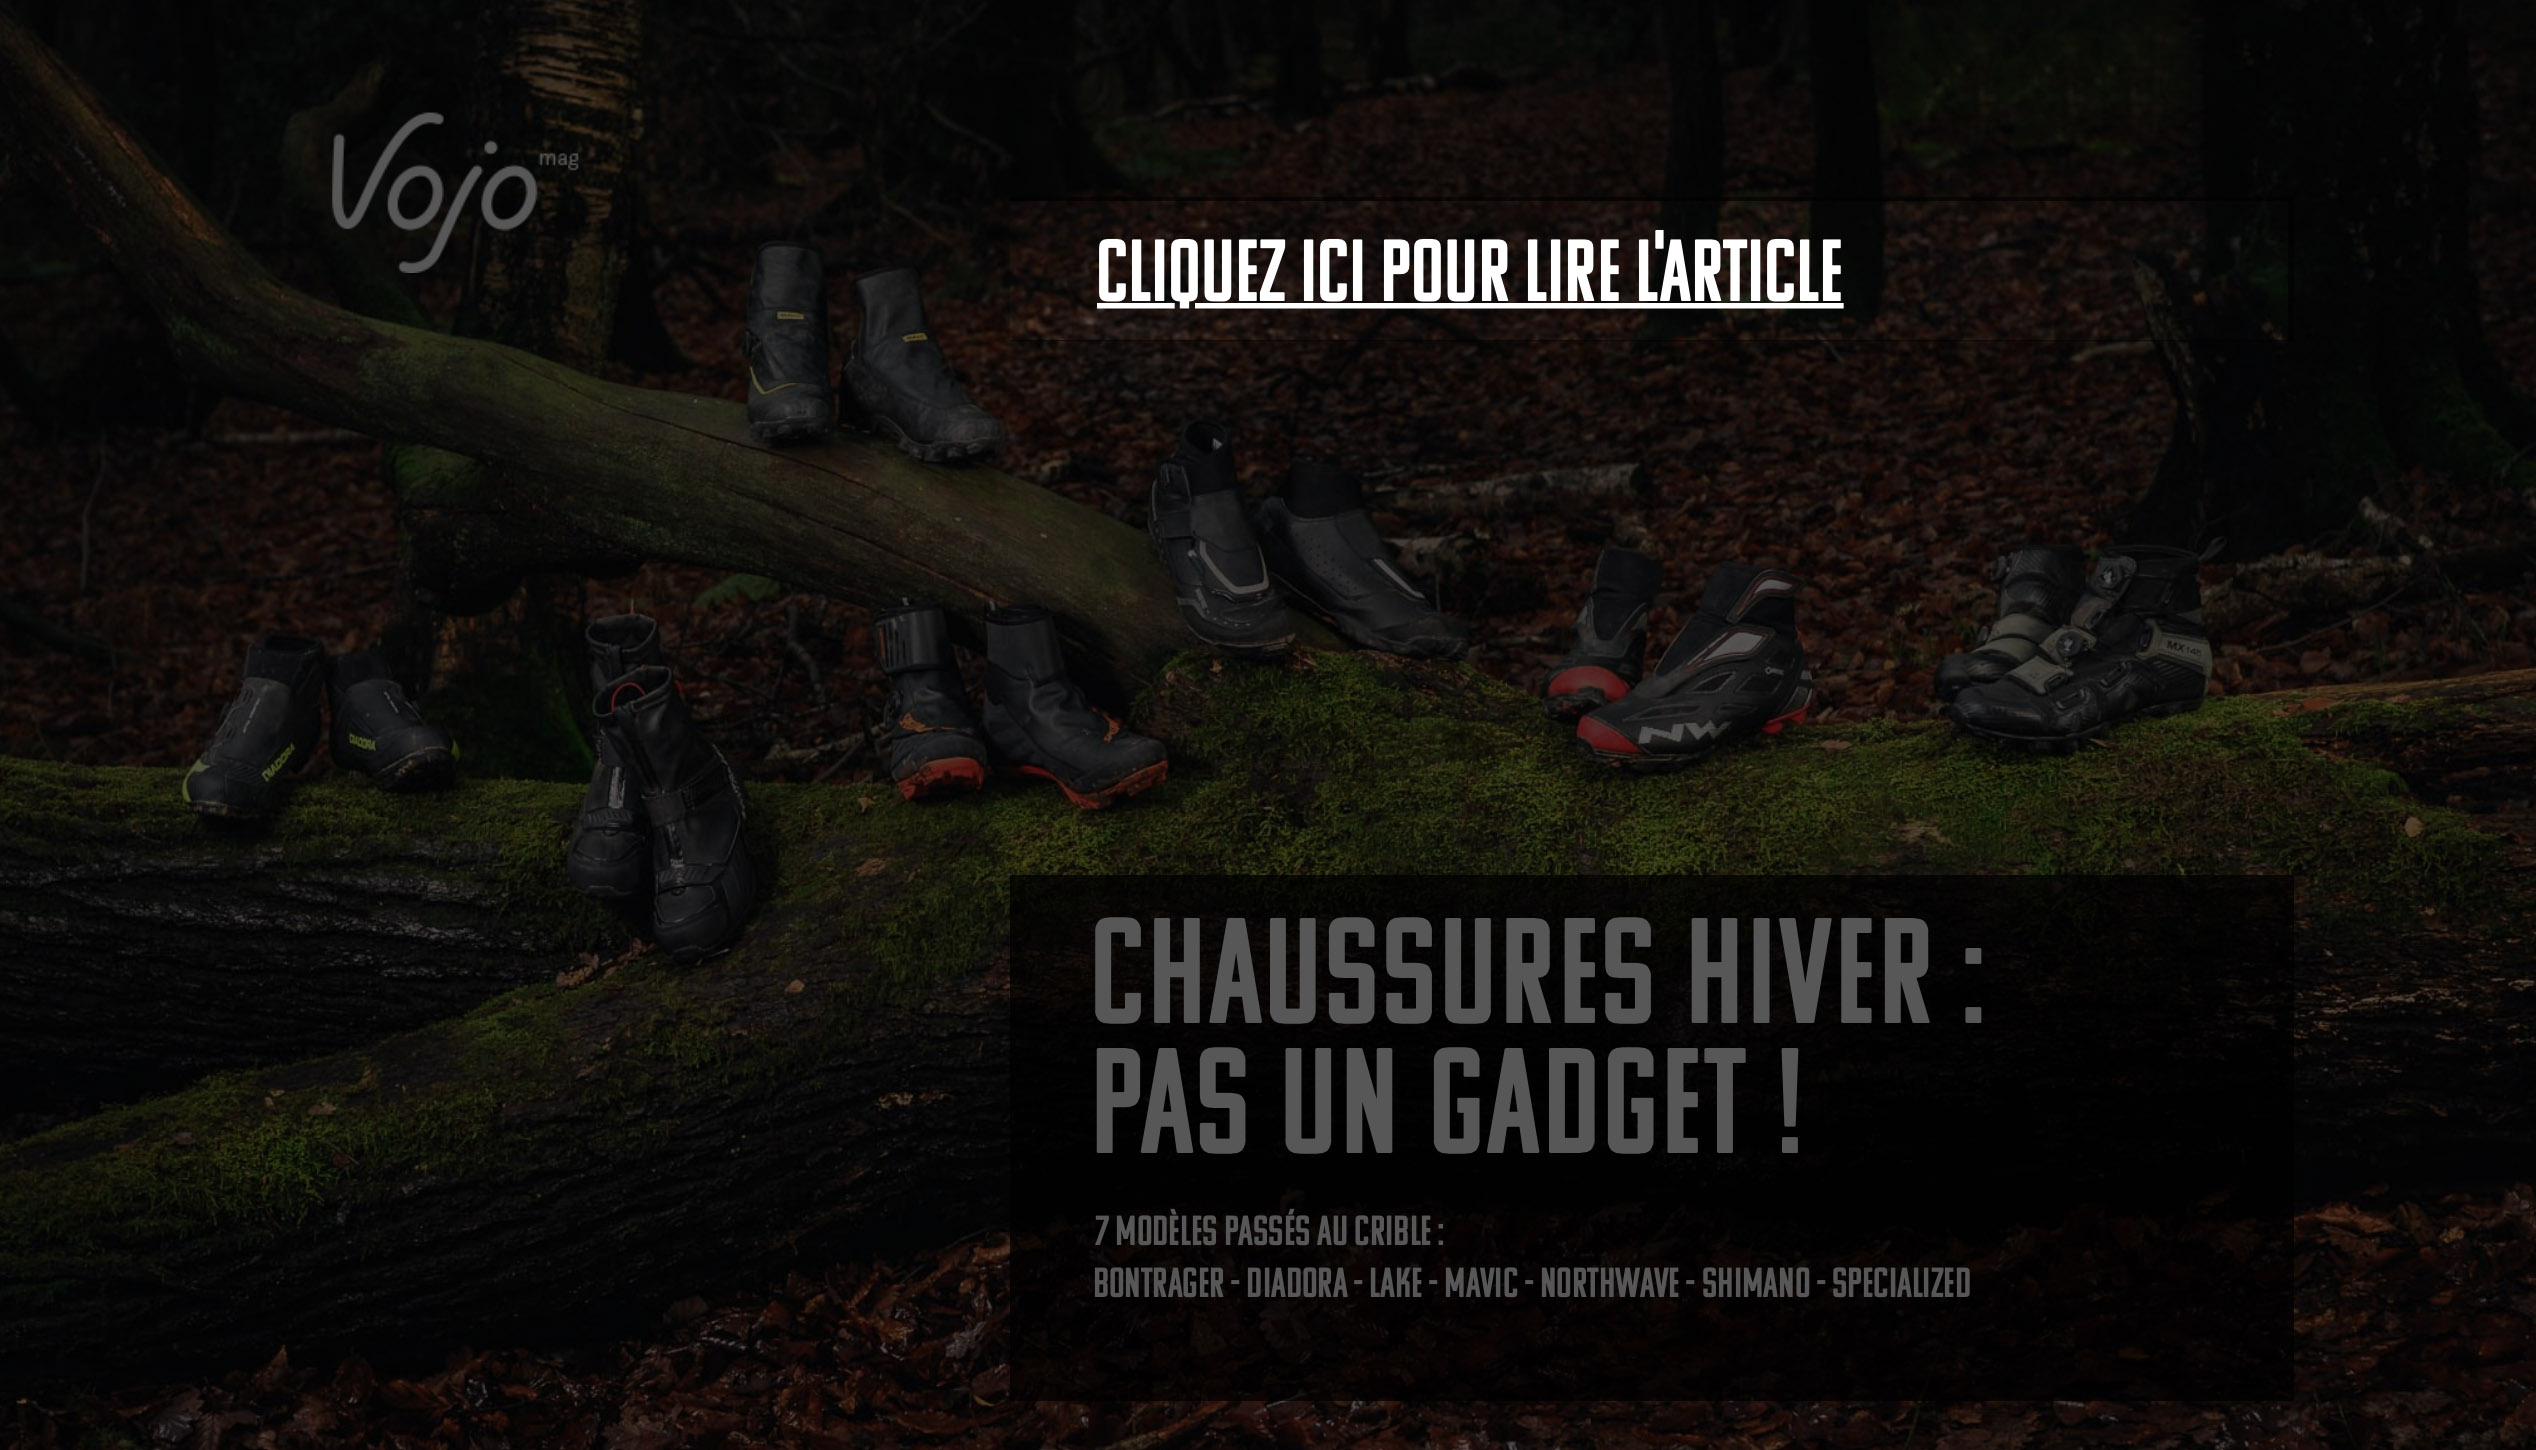 Dossier_chaussures_hiver_vojo